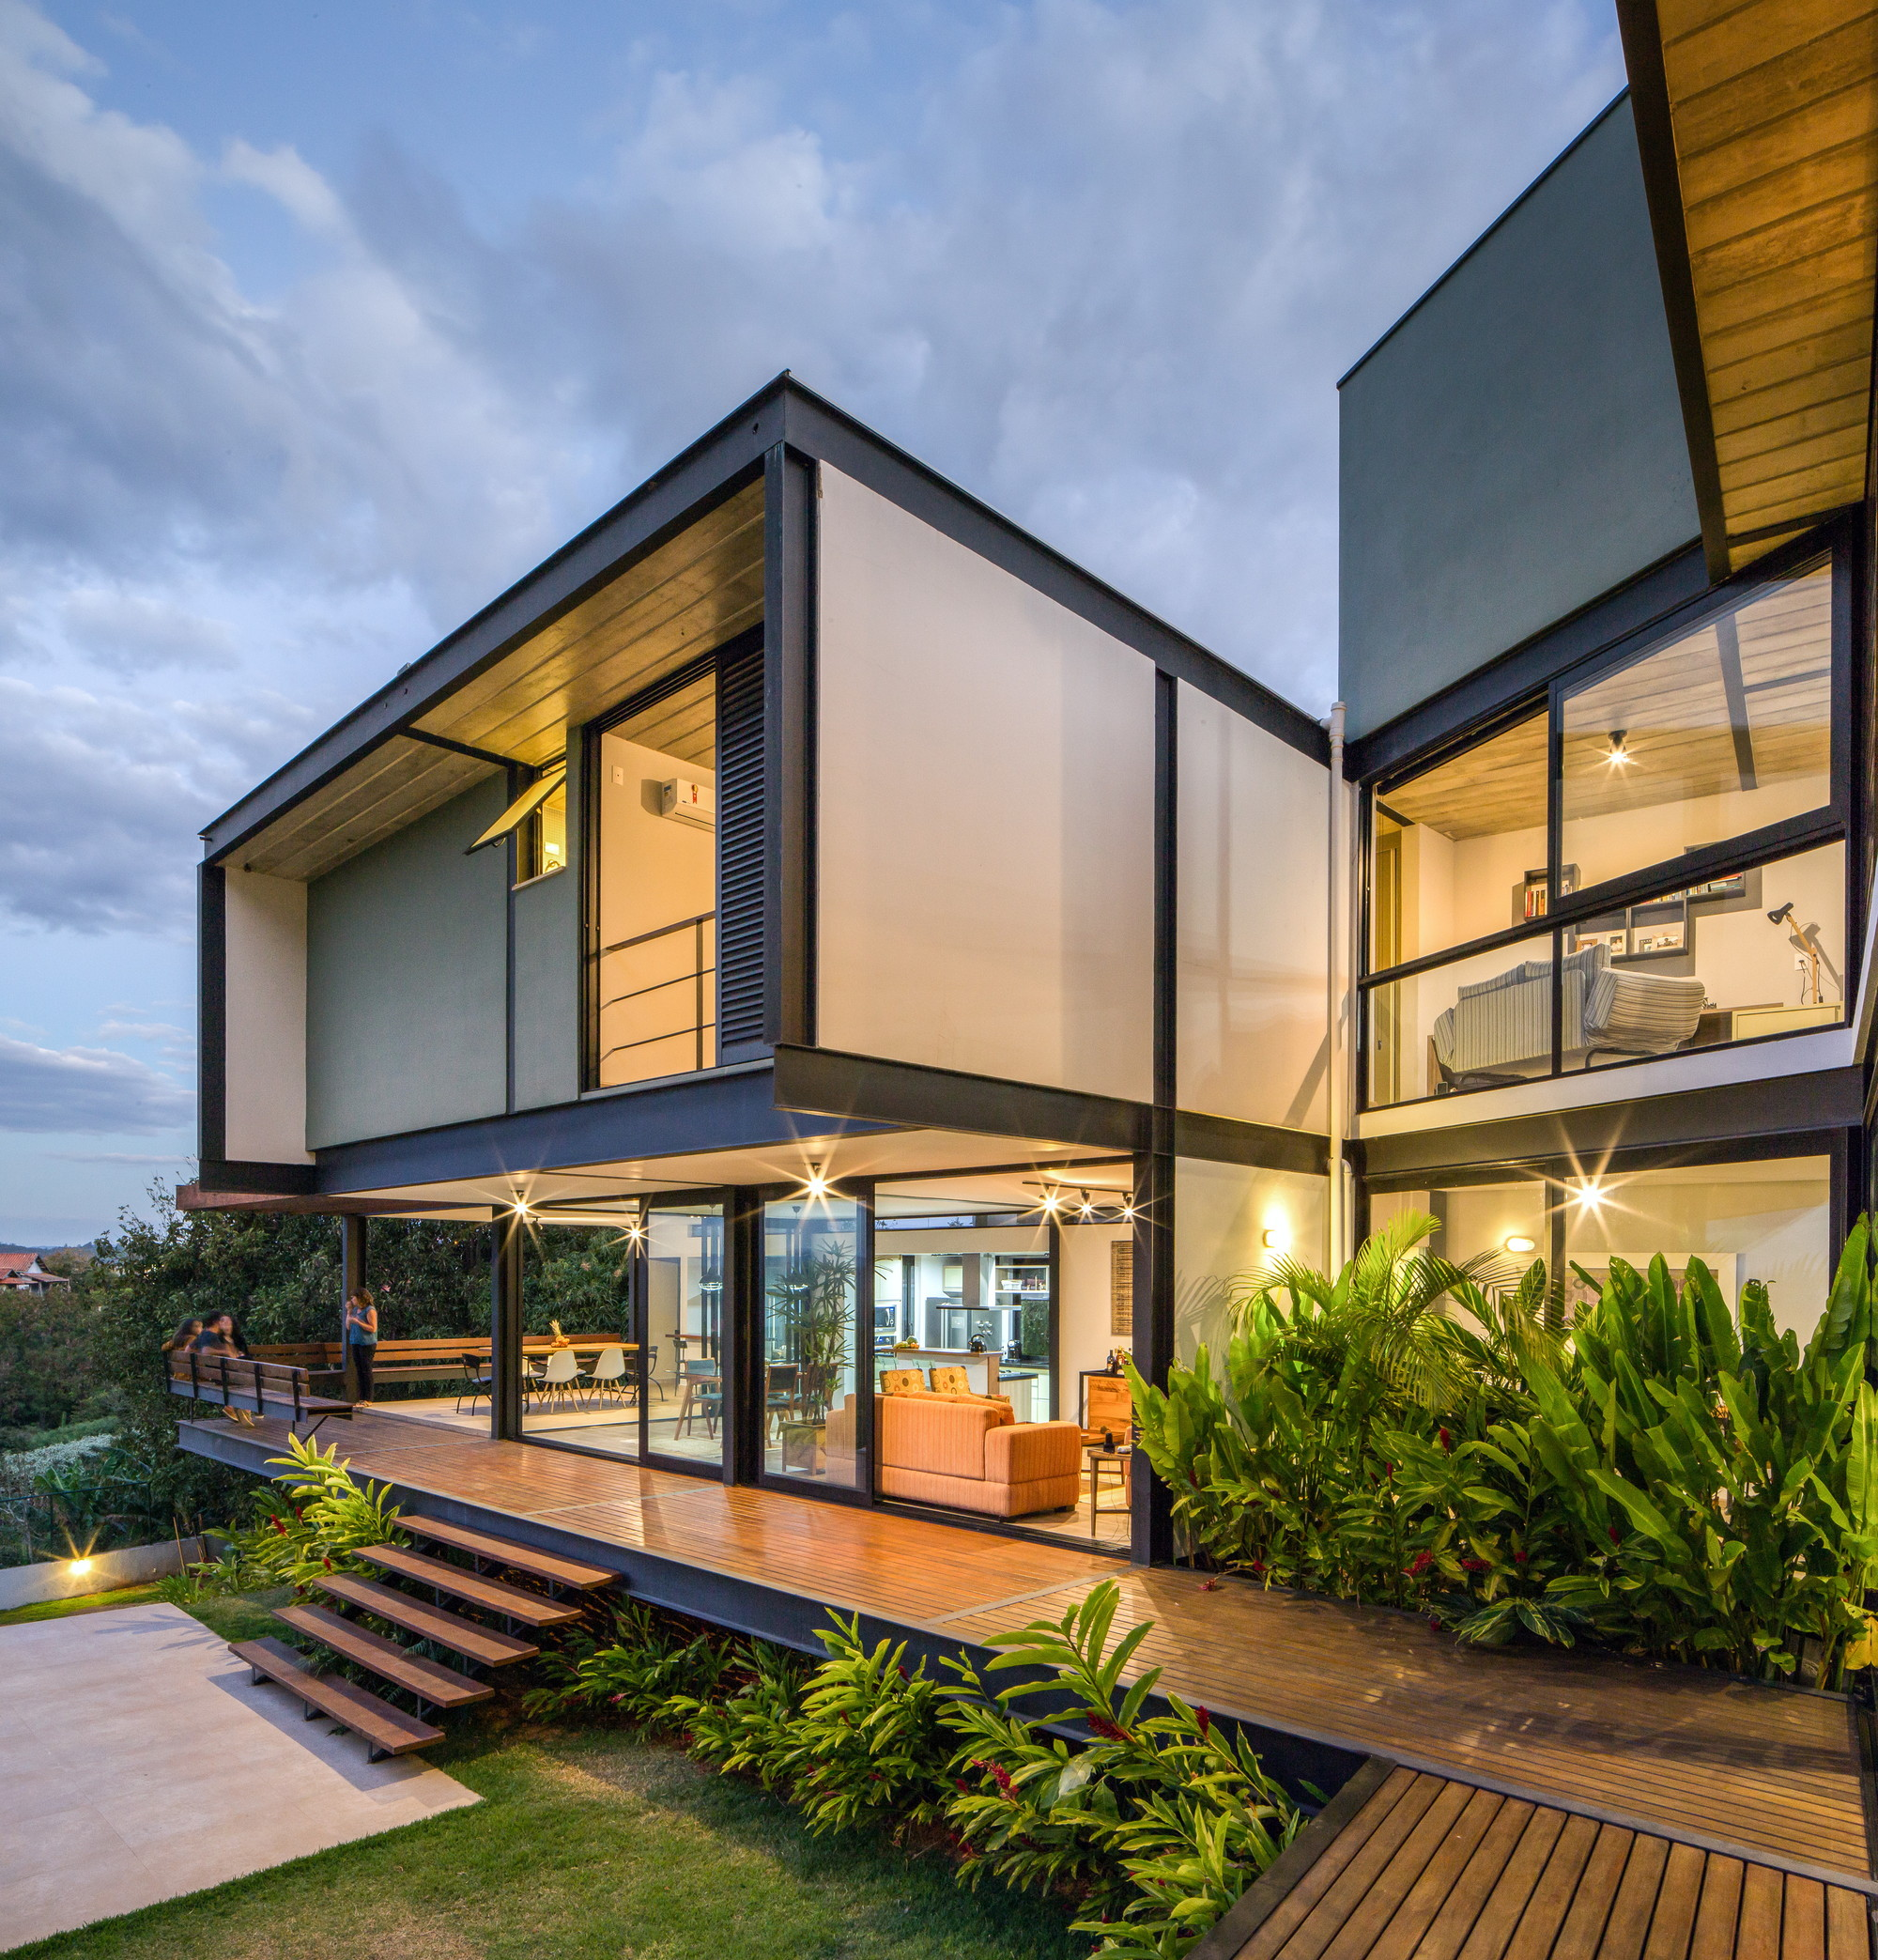 27 Best American Home Architecture Images On Pinterest: MT House / Telles Arquitetura